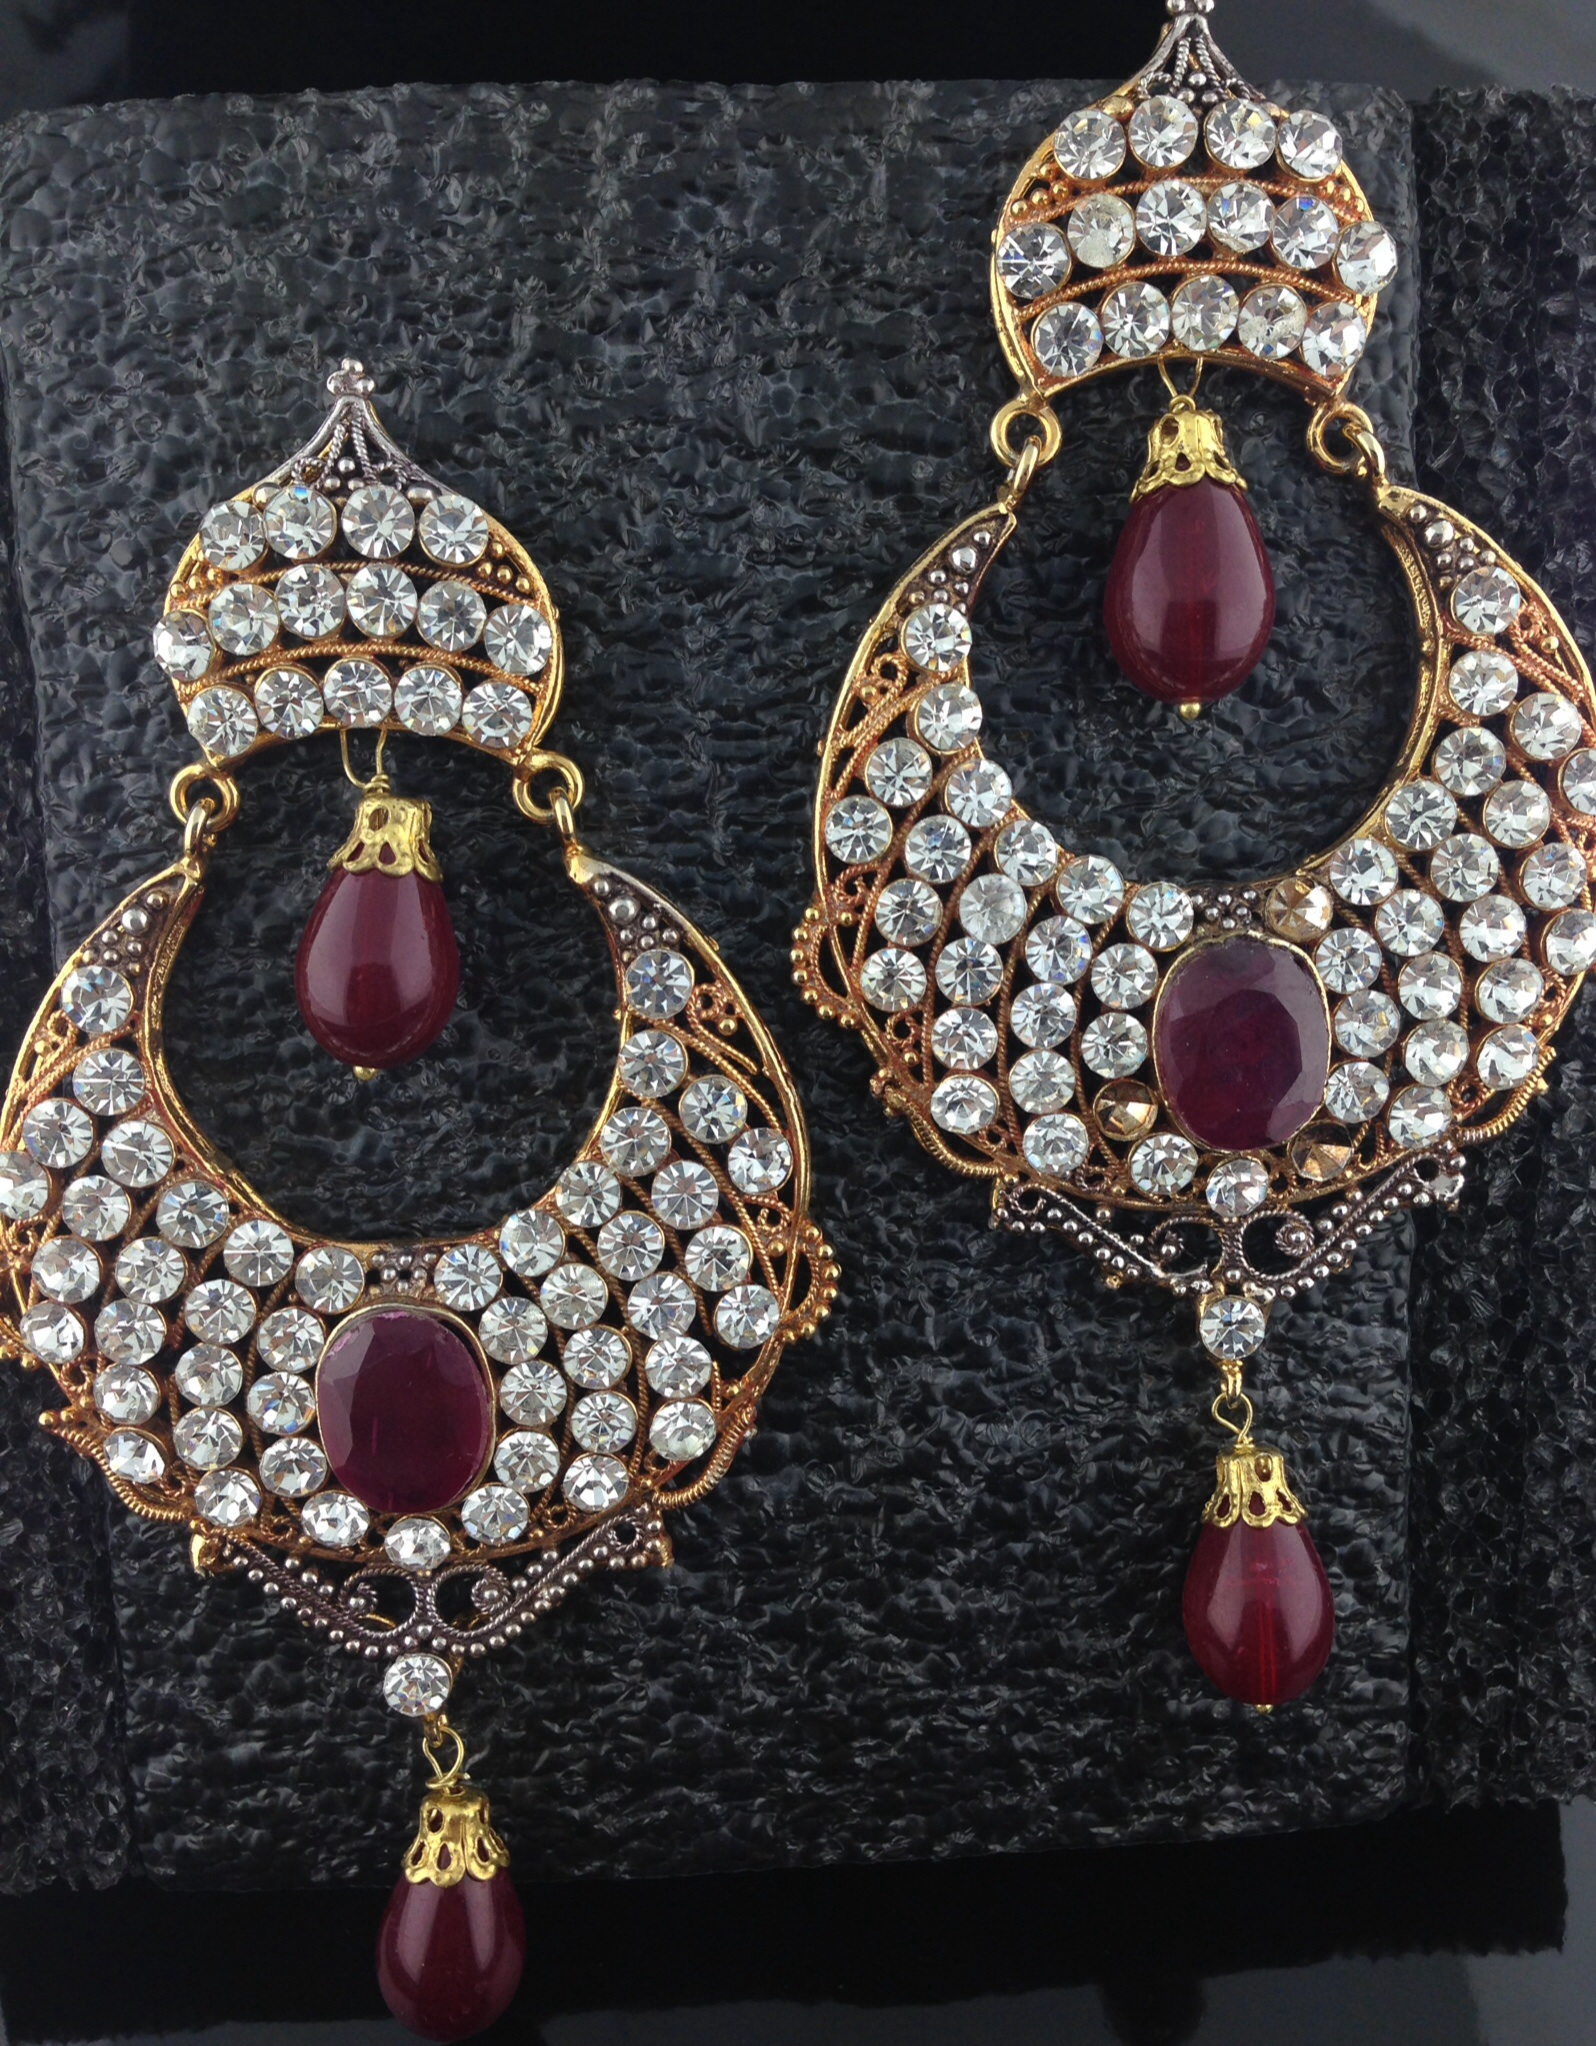 Gold Polished Teardrop With Ruby And Crystals.